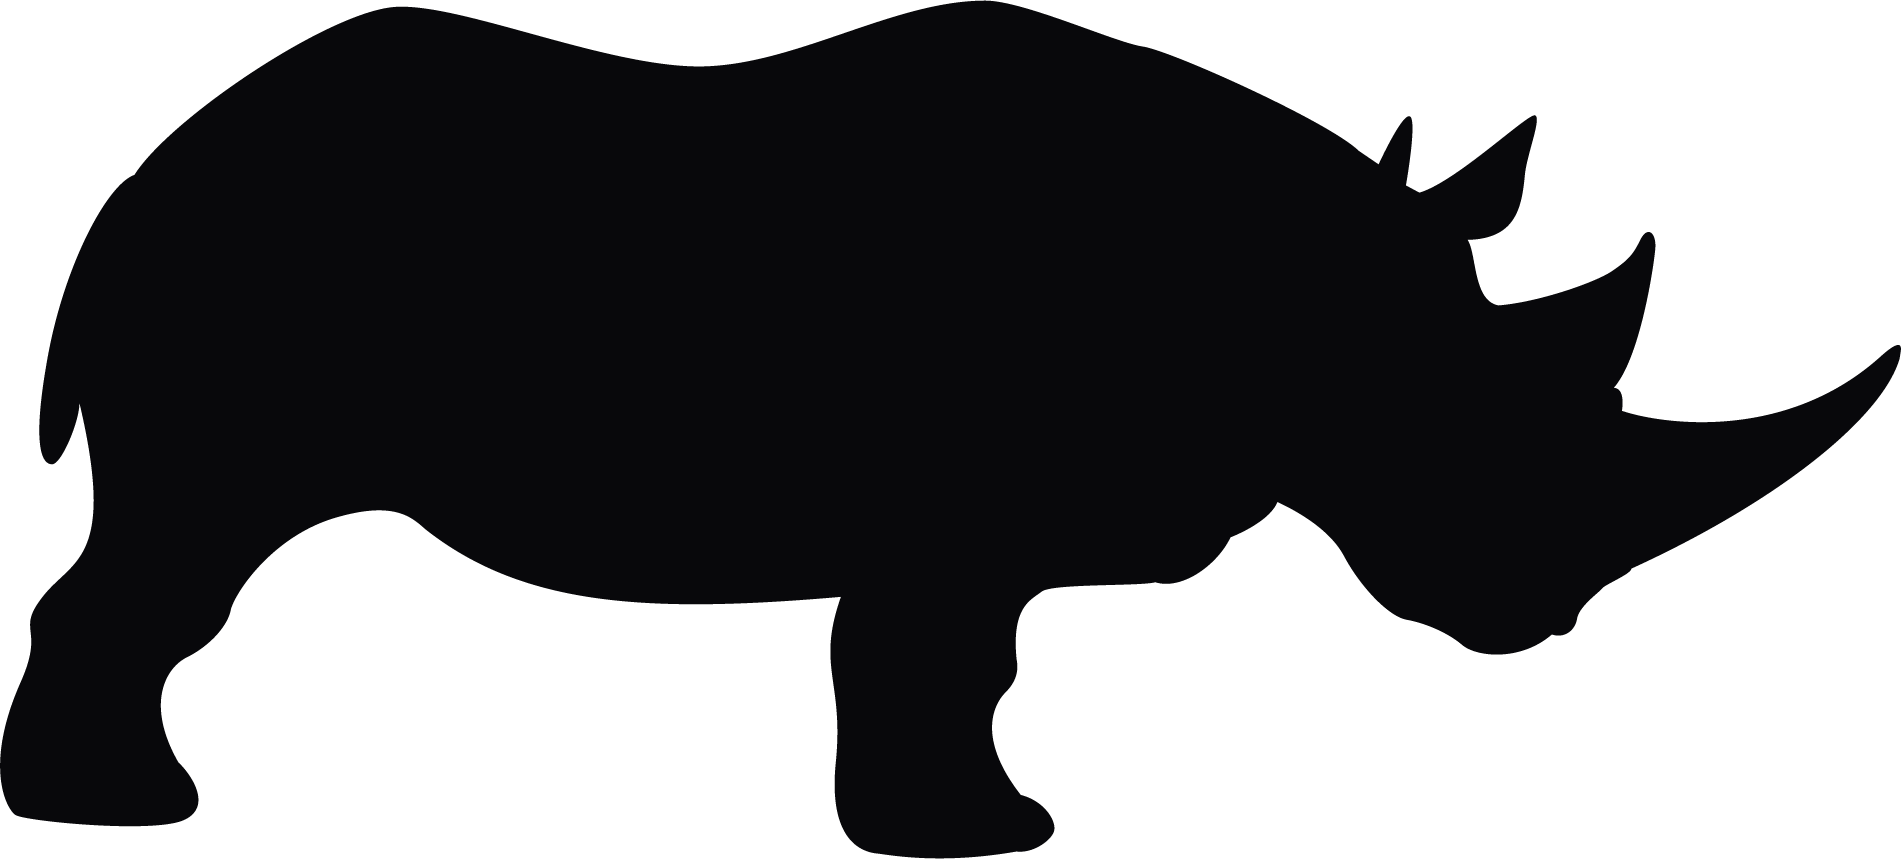 Rhino silhouette at getdrawings. Hippo clipart footprints